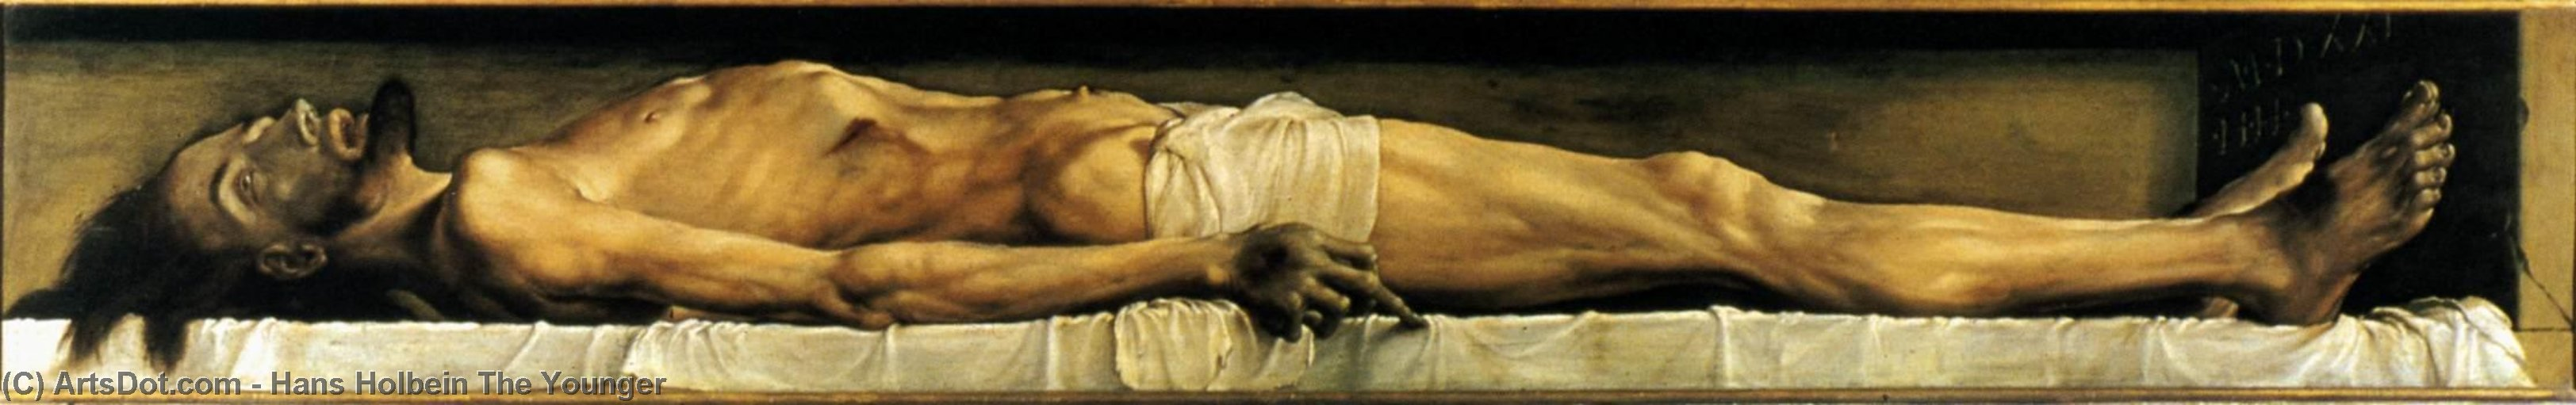 WikiOO.org - Encyclopedia of Fine Arts - Schilderen, Artwork Hans Holbein The Younger - The Body of the Dead Christ in the Tomb